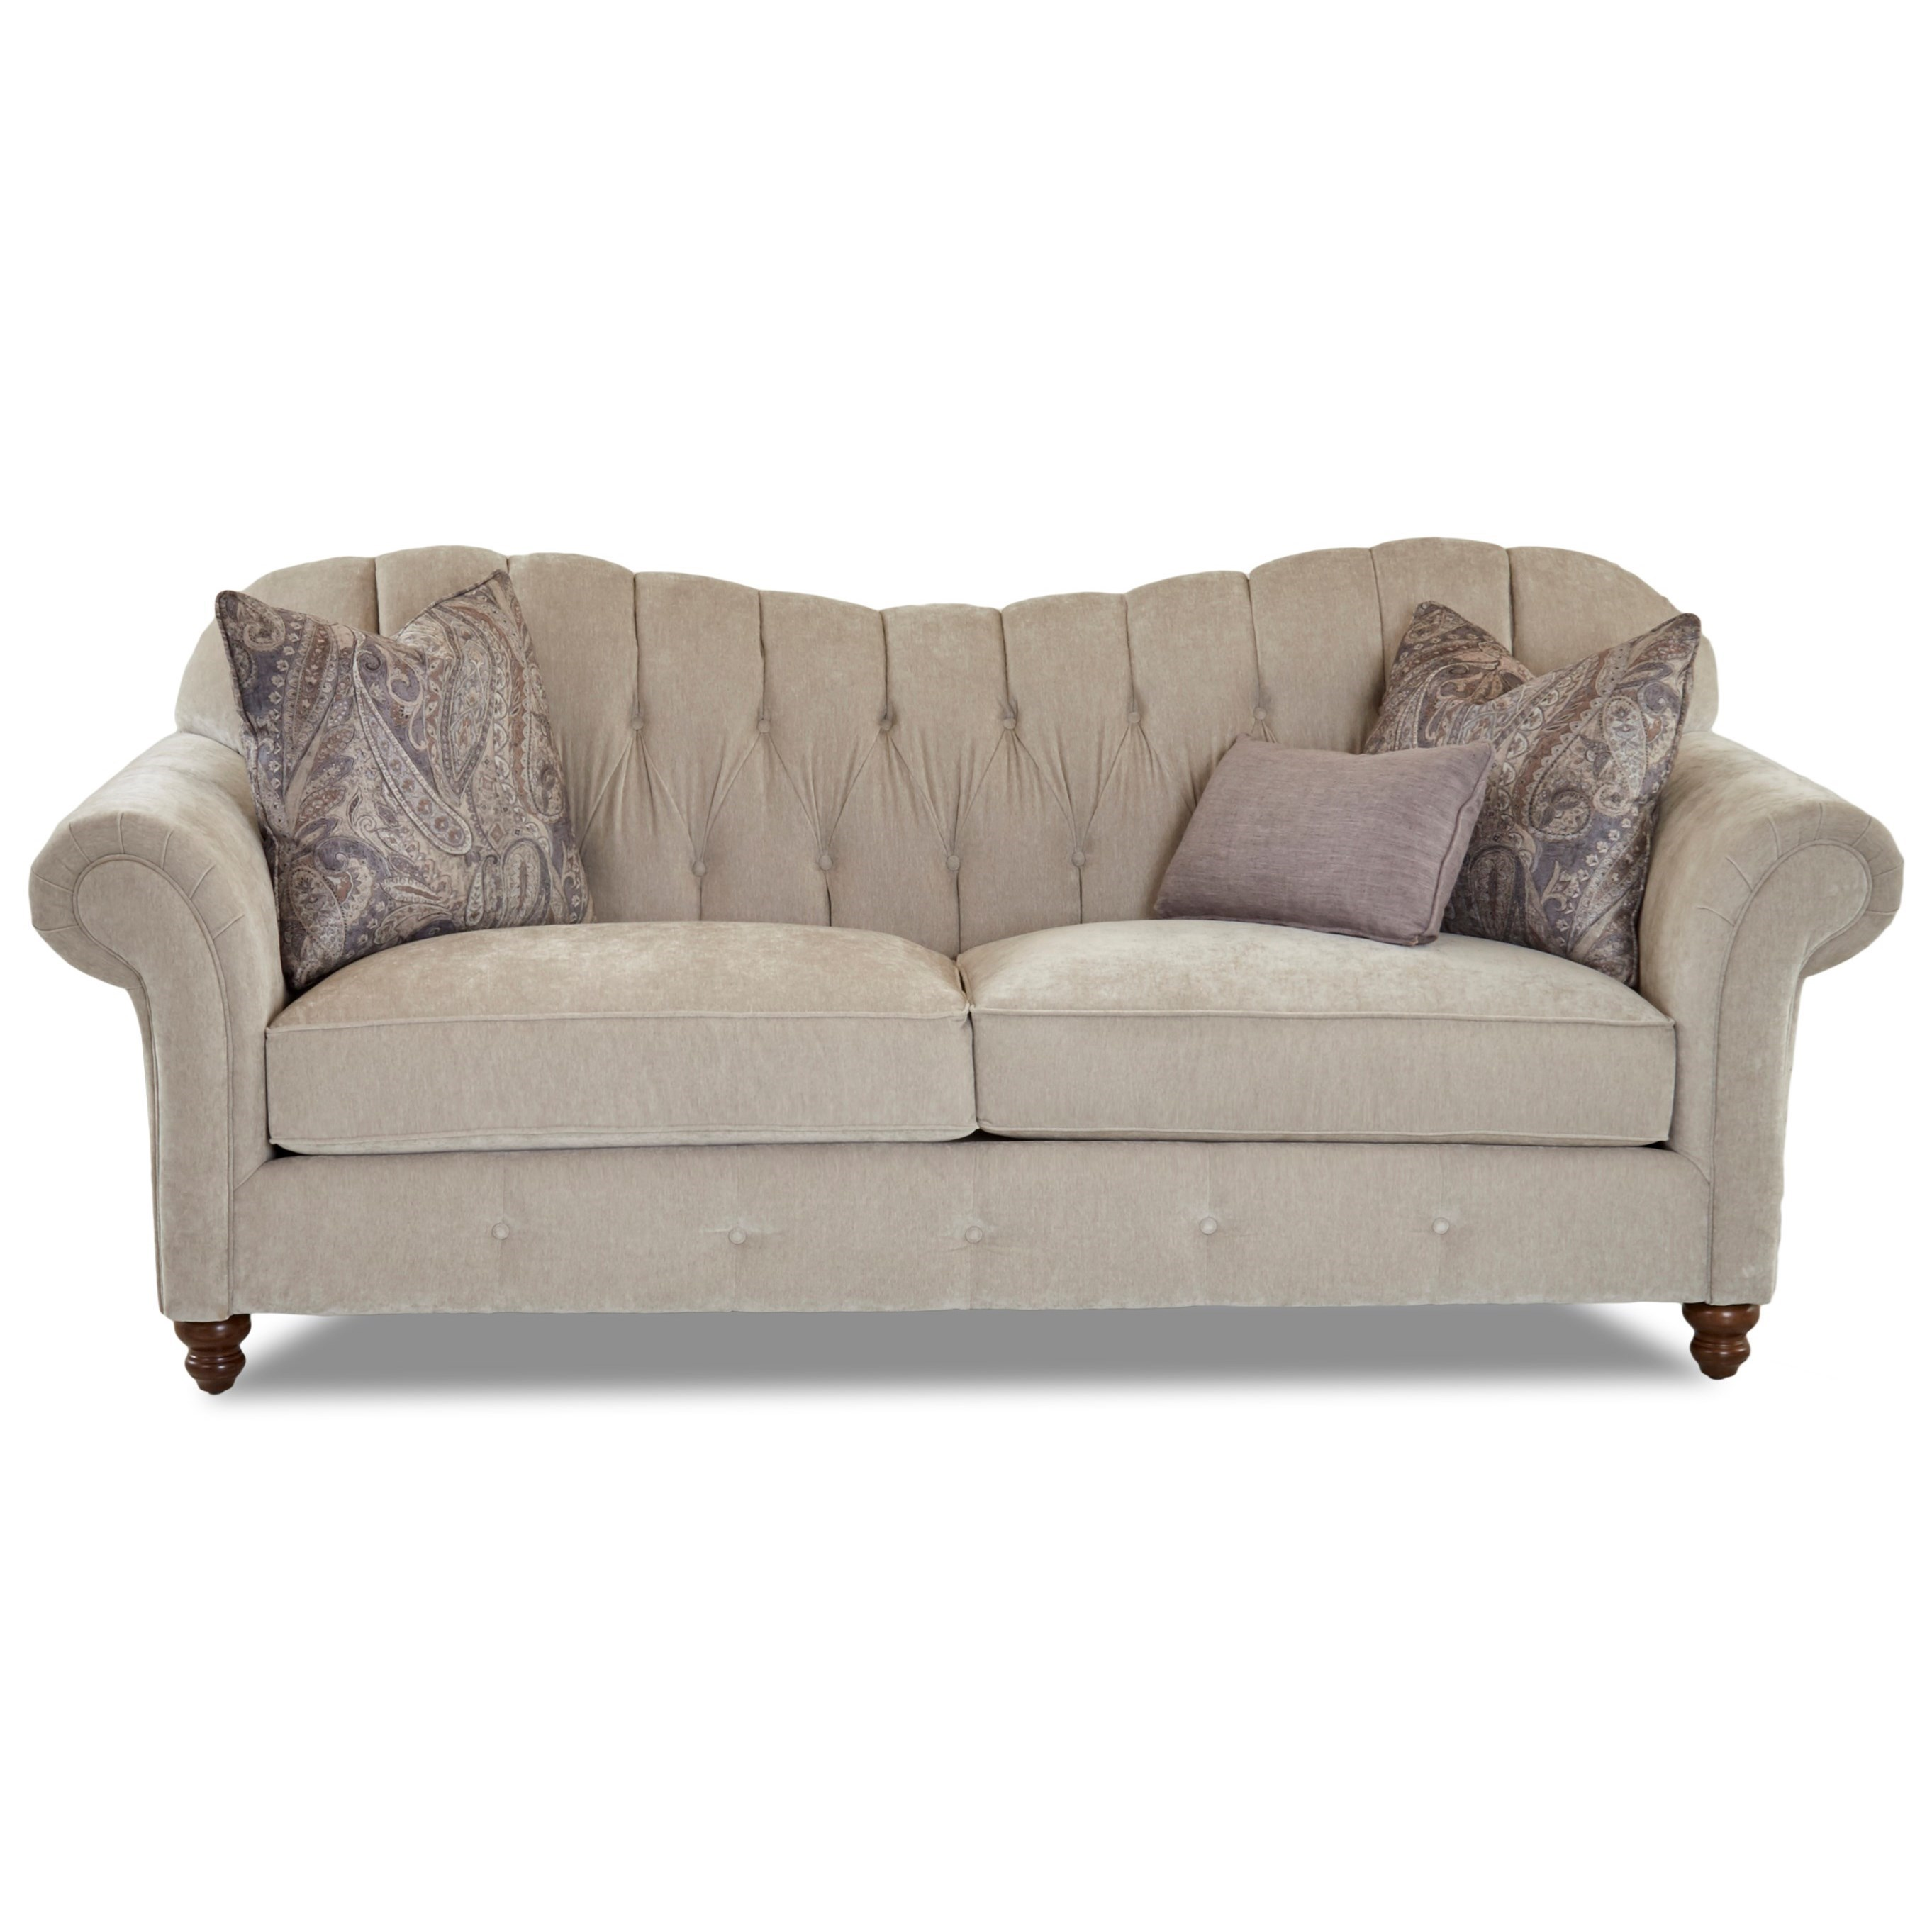 Klaussner Shelby Traditional Sweetheart Back Sofa With Button Tufting